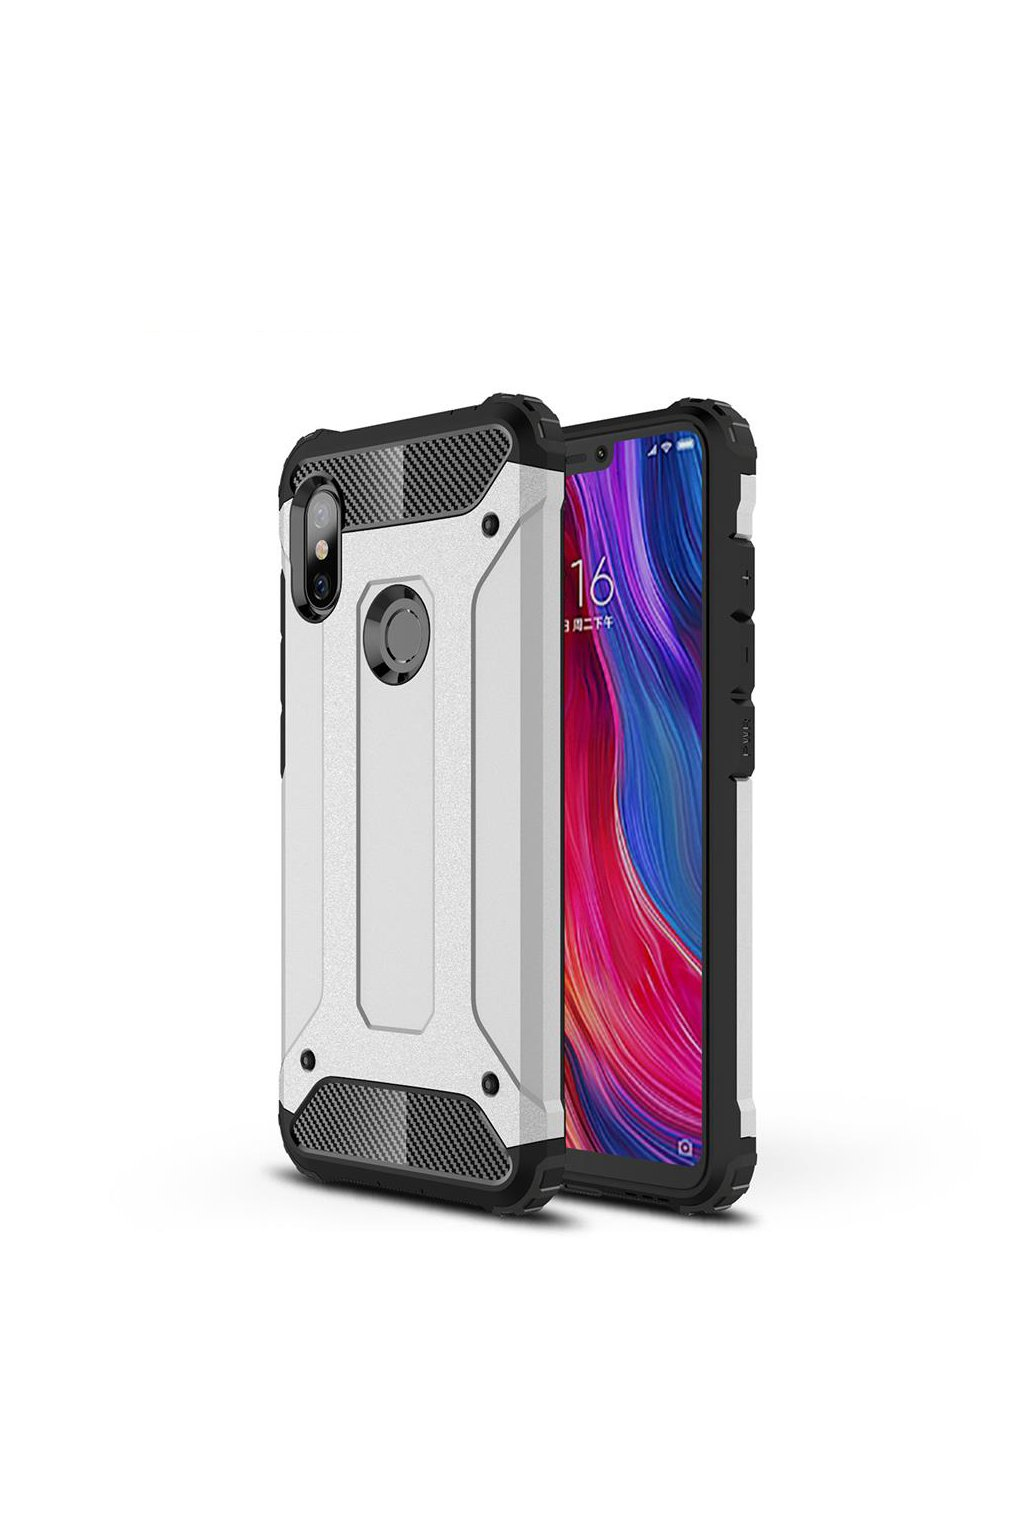 eng pl Hybrid Armor Case Tough Rugged Cover for Xiaomi Redmi Note 6 Pro silver 46239 8